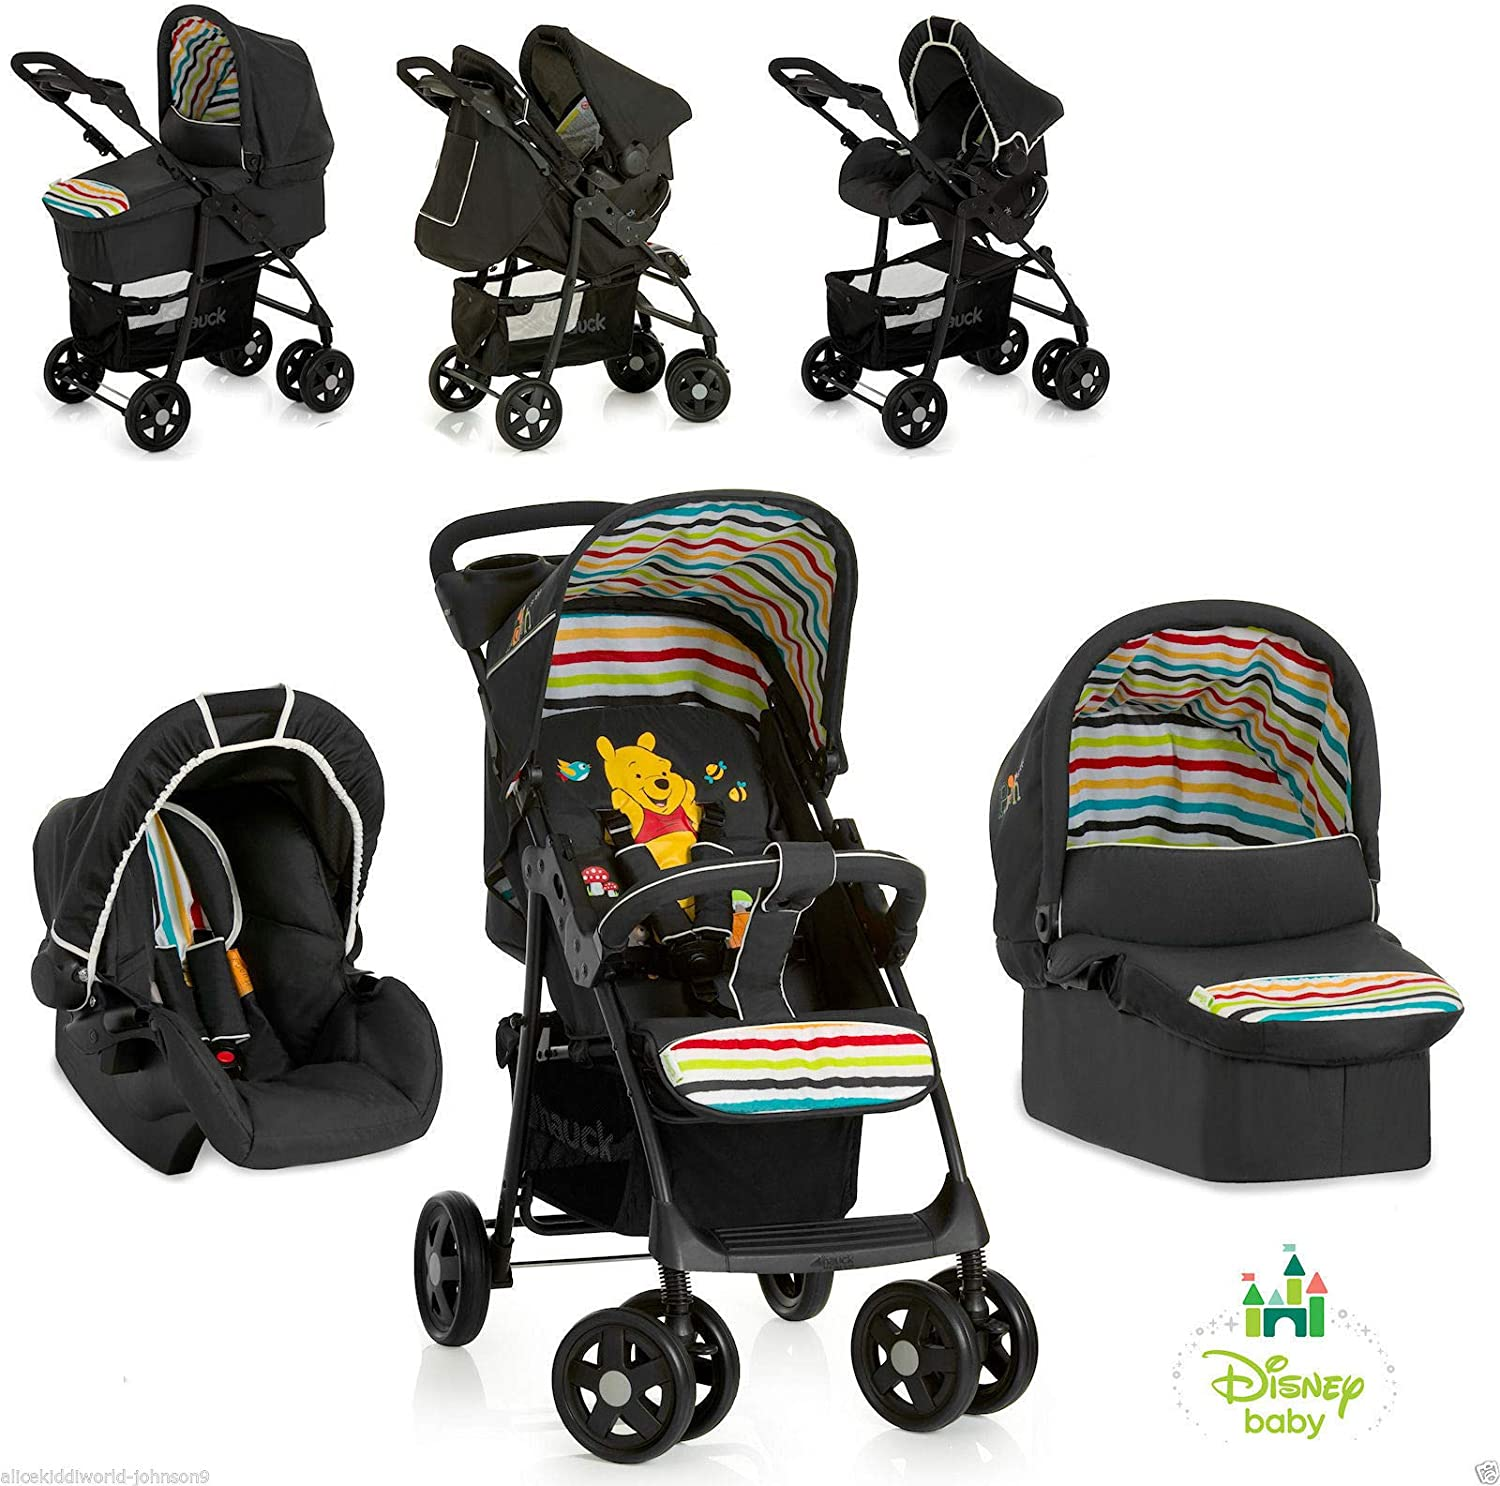 New Hauck Disney Winnie The Pooh Tidytime 3in1 Trio Shopper Pushchair Buggy Pram Carrycot Car Seat Set 1 2 Working Days Delivery To Mainland Uk Amazon Co Uk Baby